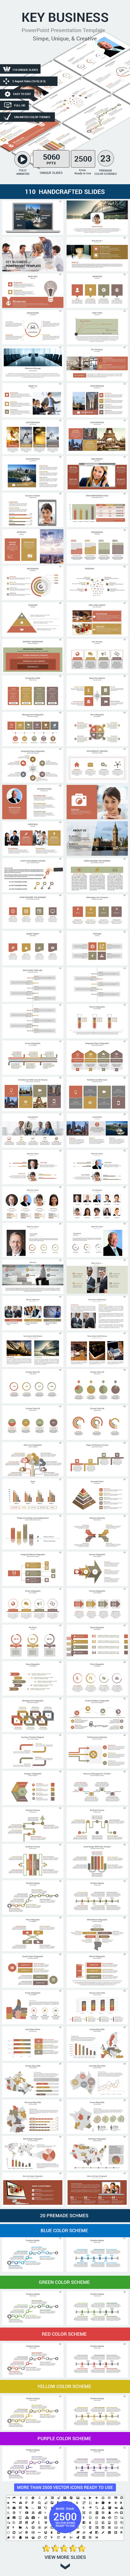 Key Business PowerPoint Presentation Template - Business PowerPoint Templates